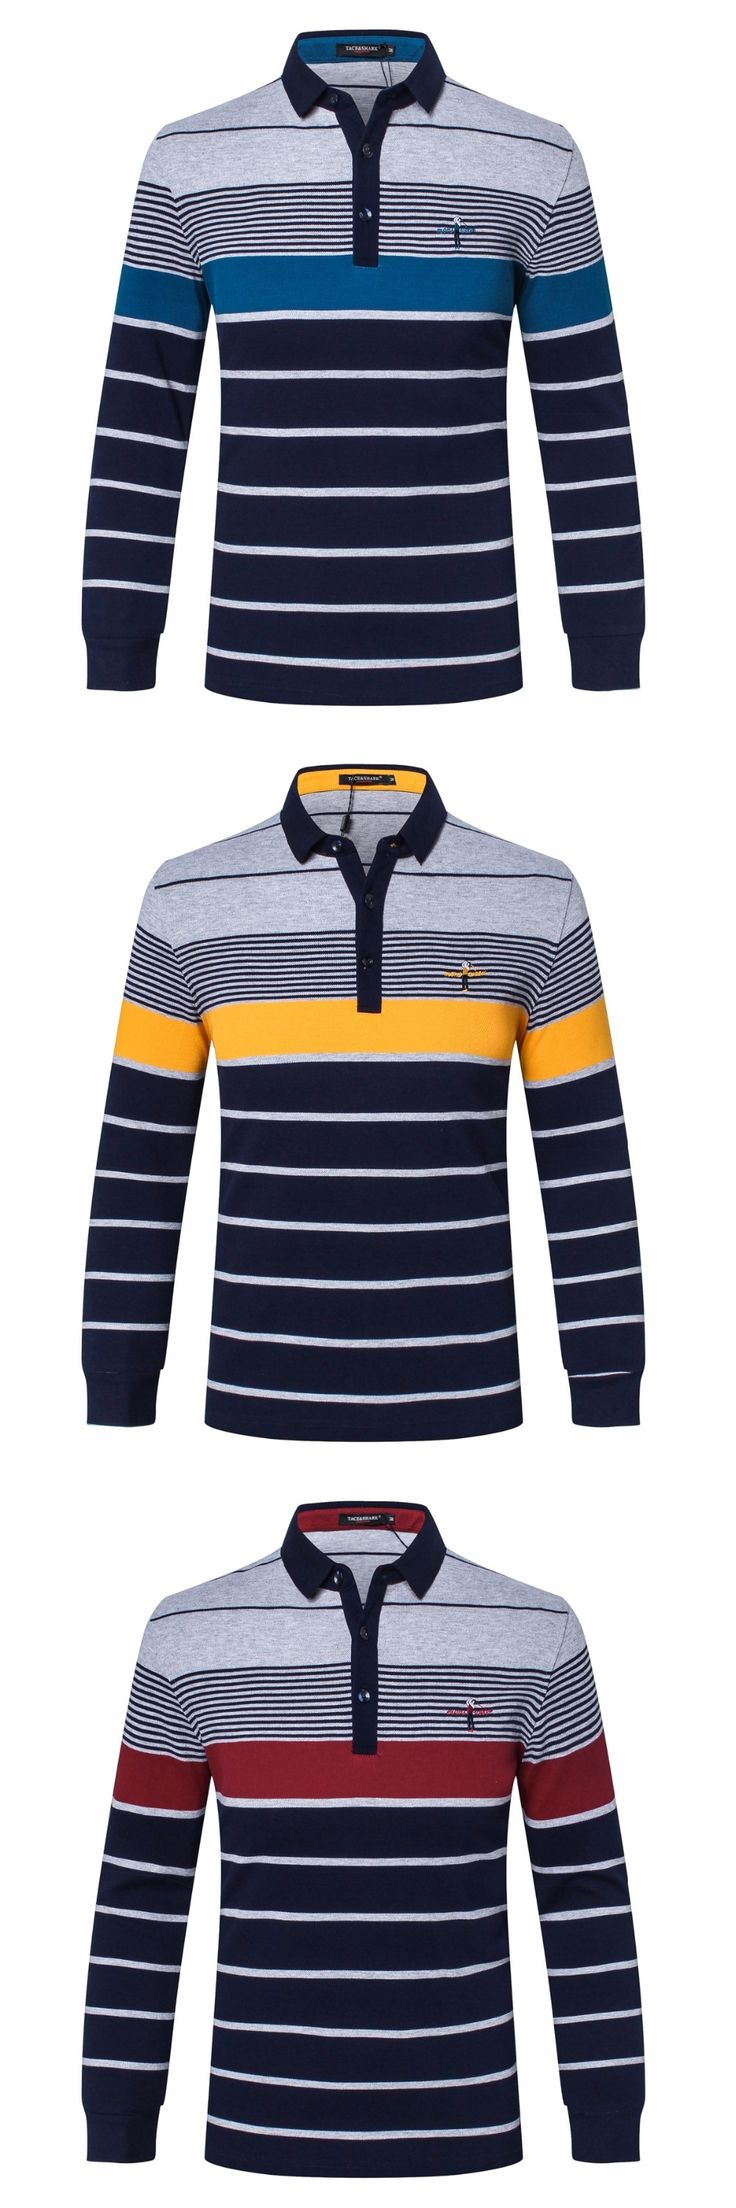 polo shirt men Tace&shark Brand clothing long sleeve cotton Men's Polo shirt long sleeve lapel stripe embroidery Polo shirt